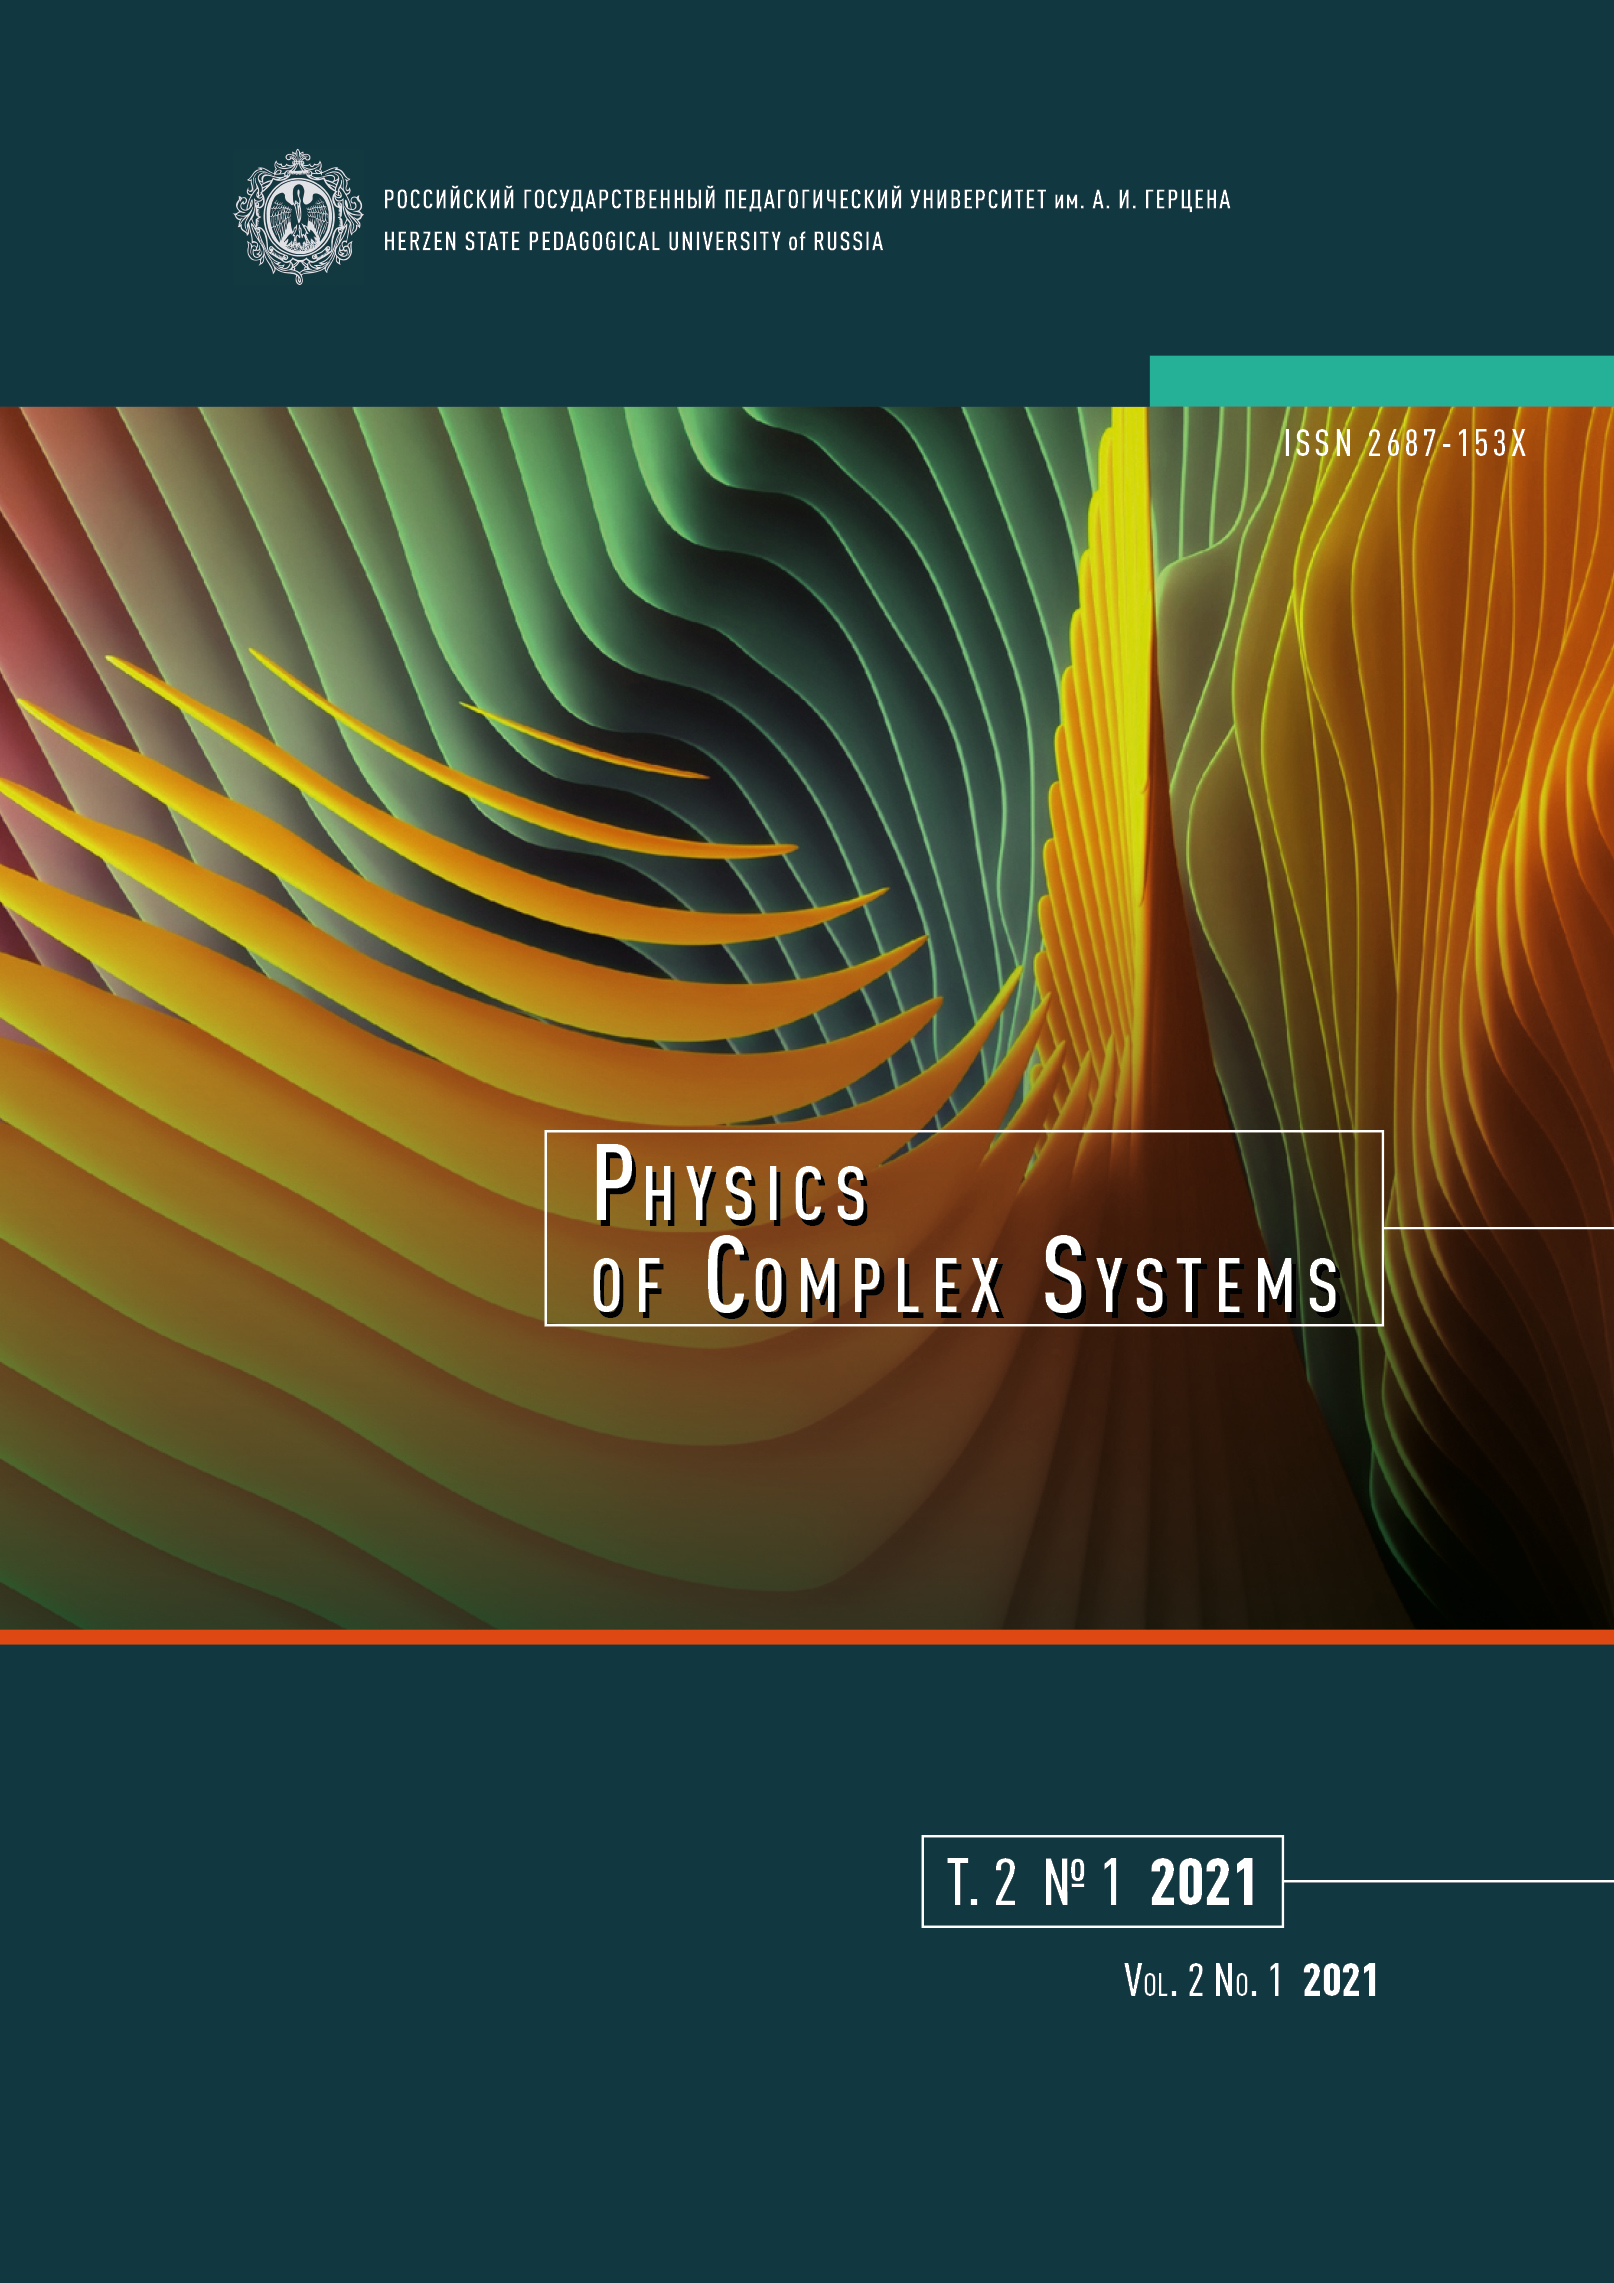 """Cover of the journal """"Physics of Complex Systems"""" (vol. 2, no. 1)"""